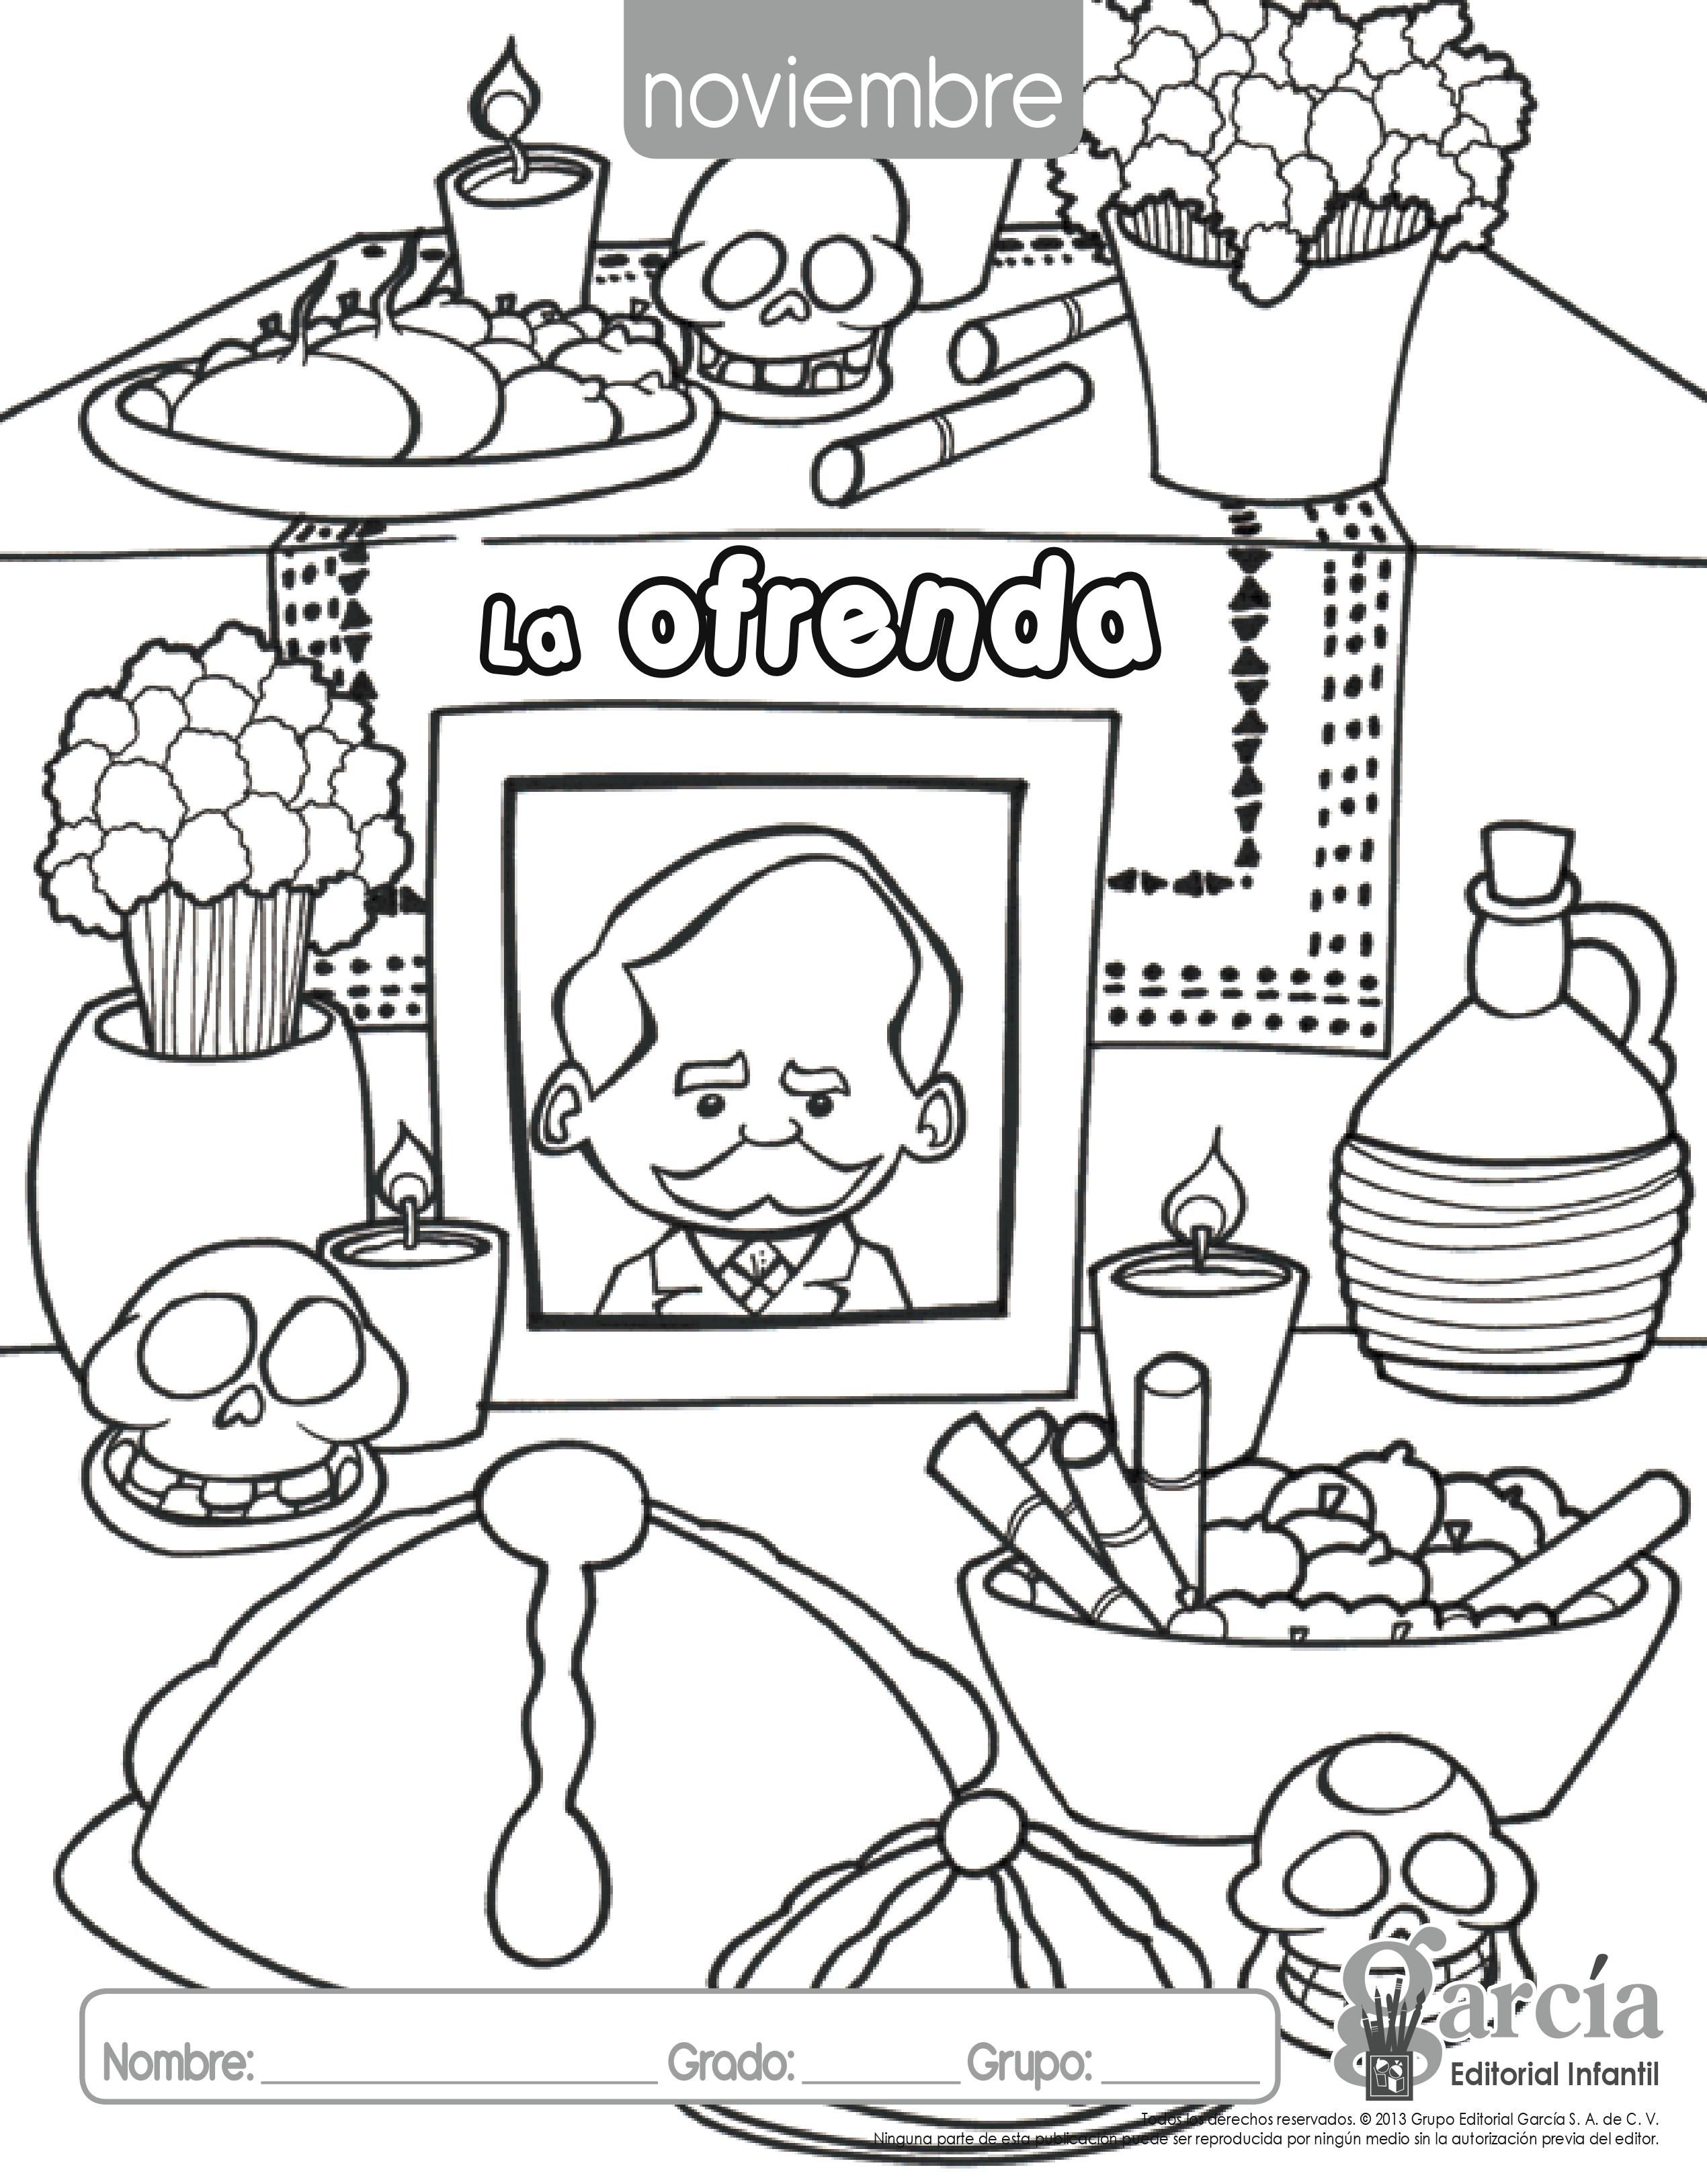 Worksheets Day Of The Dead Worksheets pin by alma cuevas on printable pinterest school spanish and classroom management worksheets english class homework ideas kind preschool third